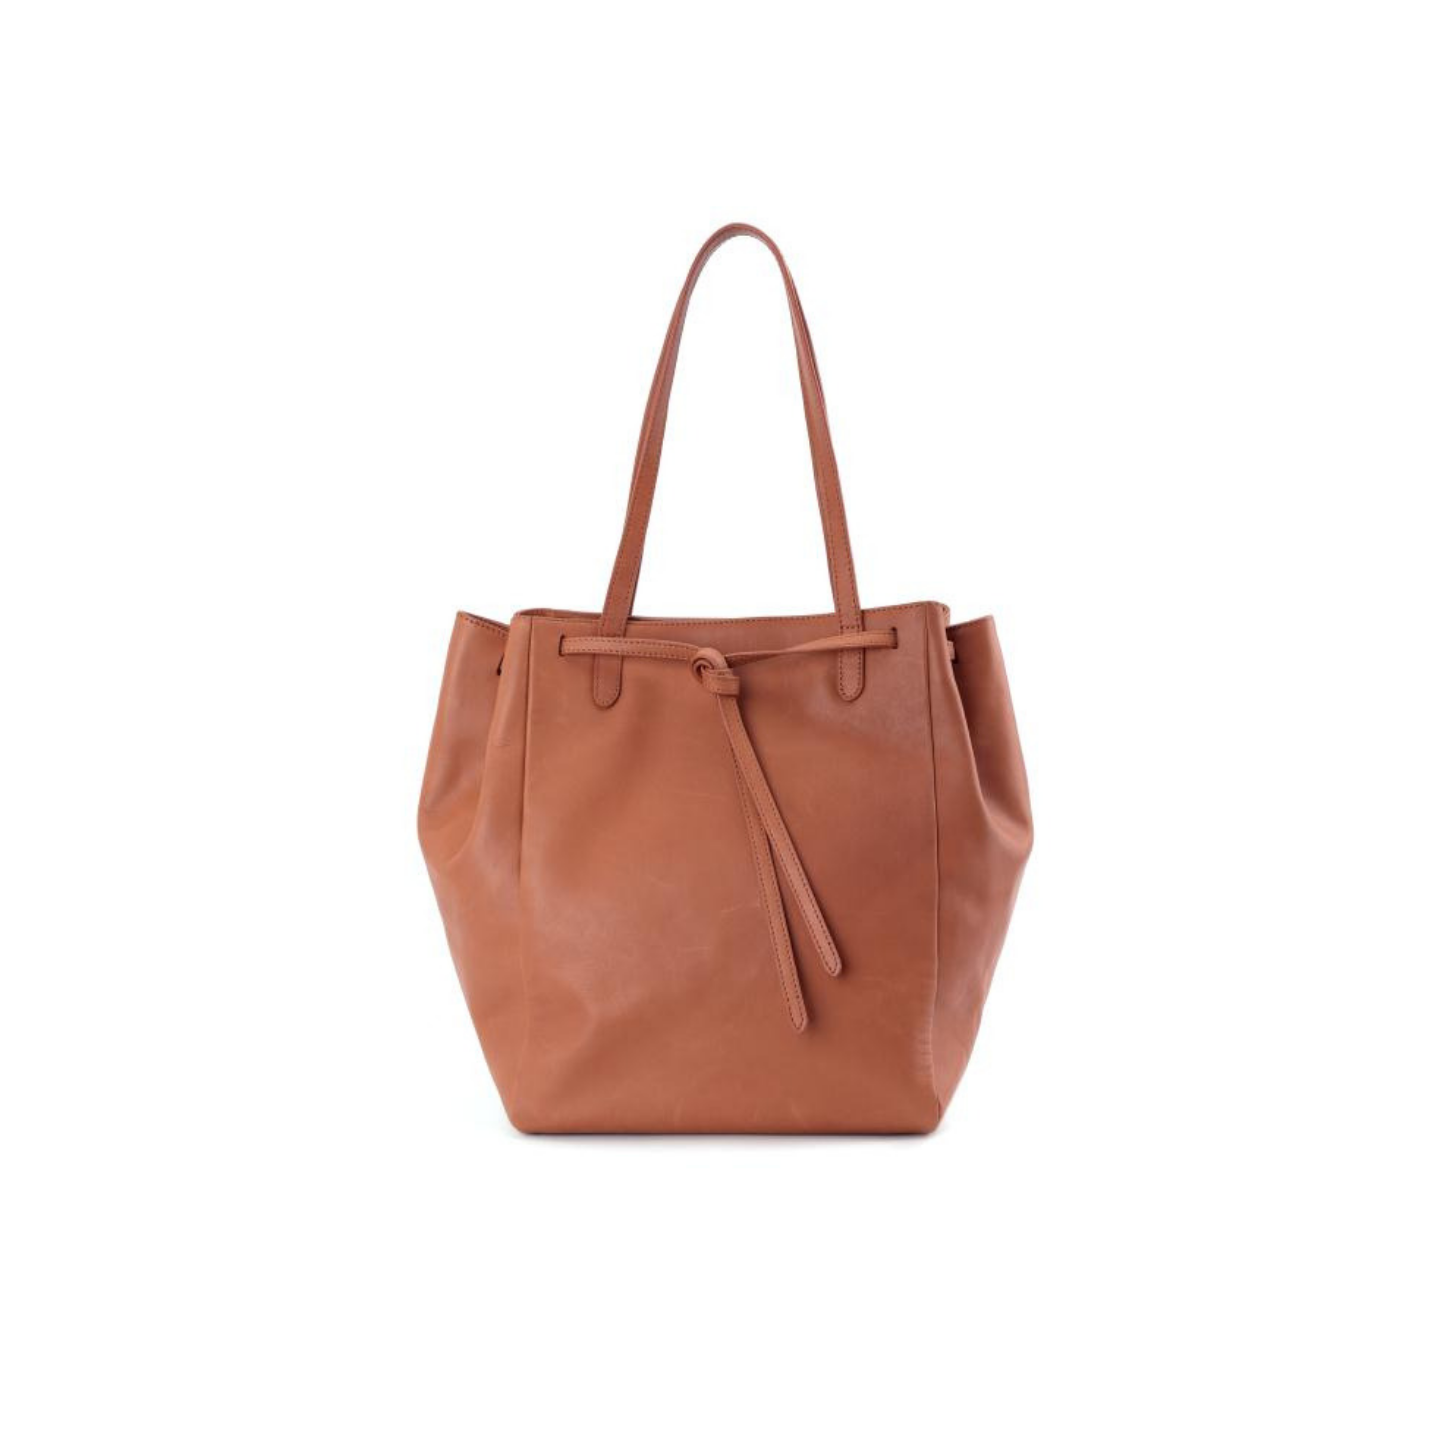 Nu Market Brown Leather Tote Bag